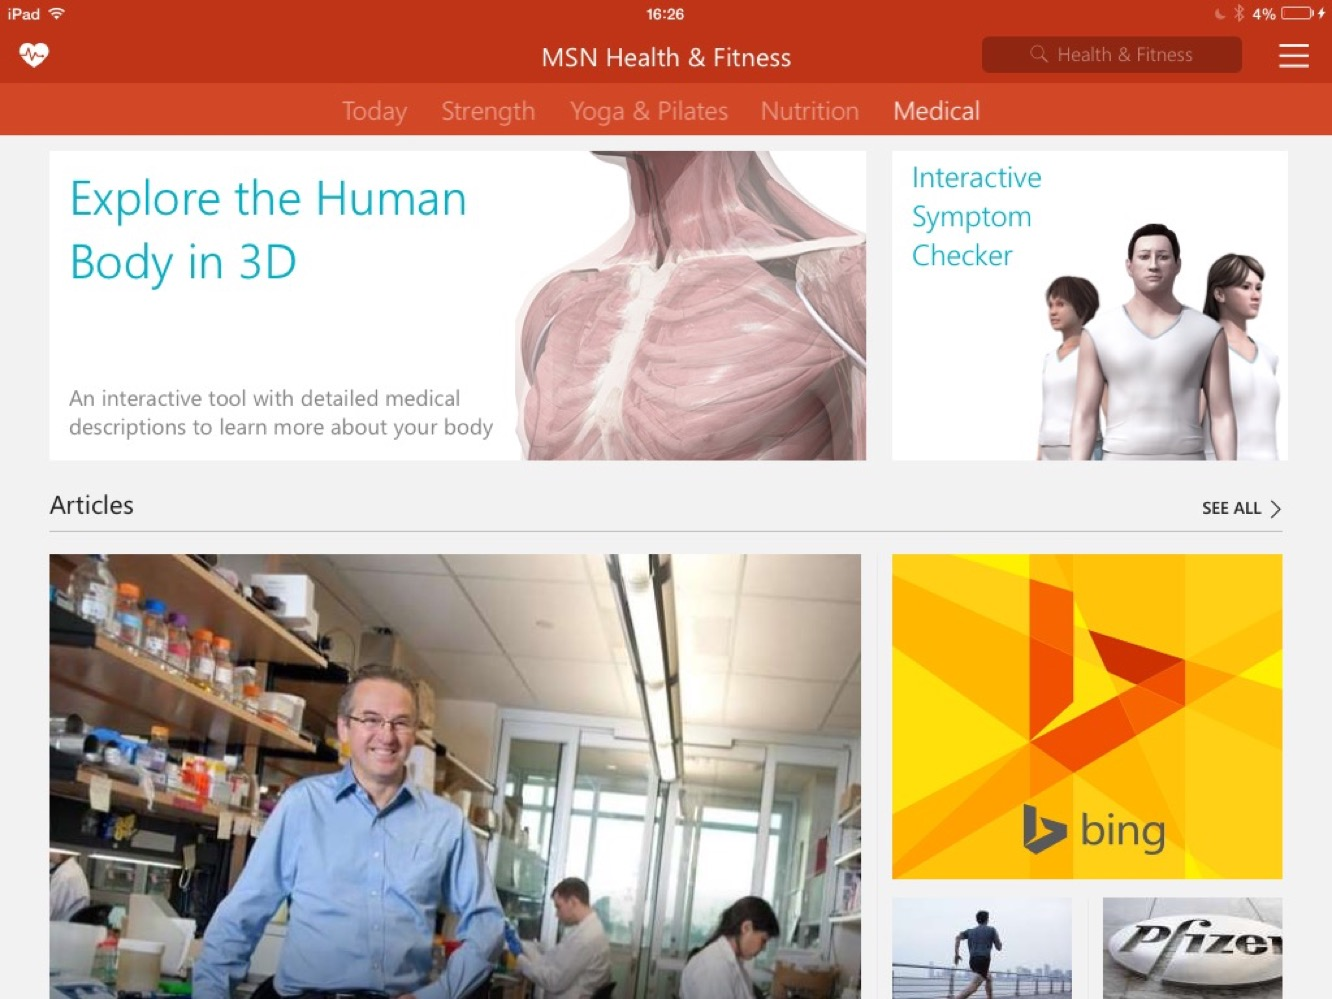 apps msn health and fitness News: Apps of the Week: Microsoft's MSN apps